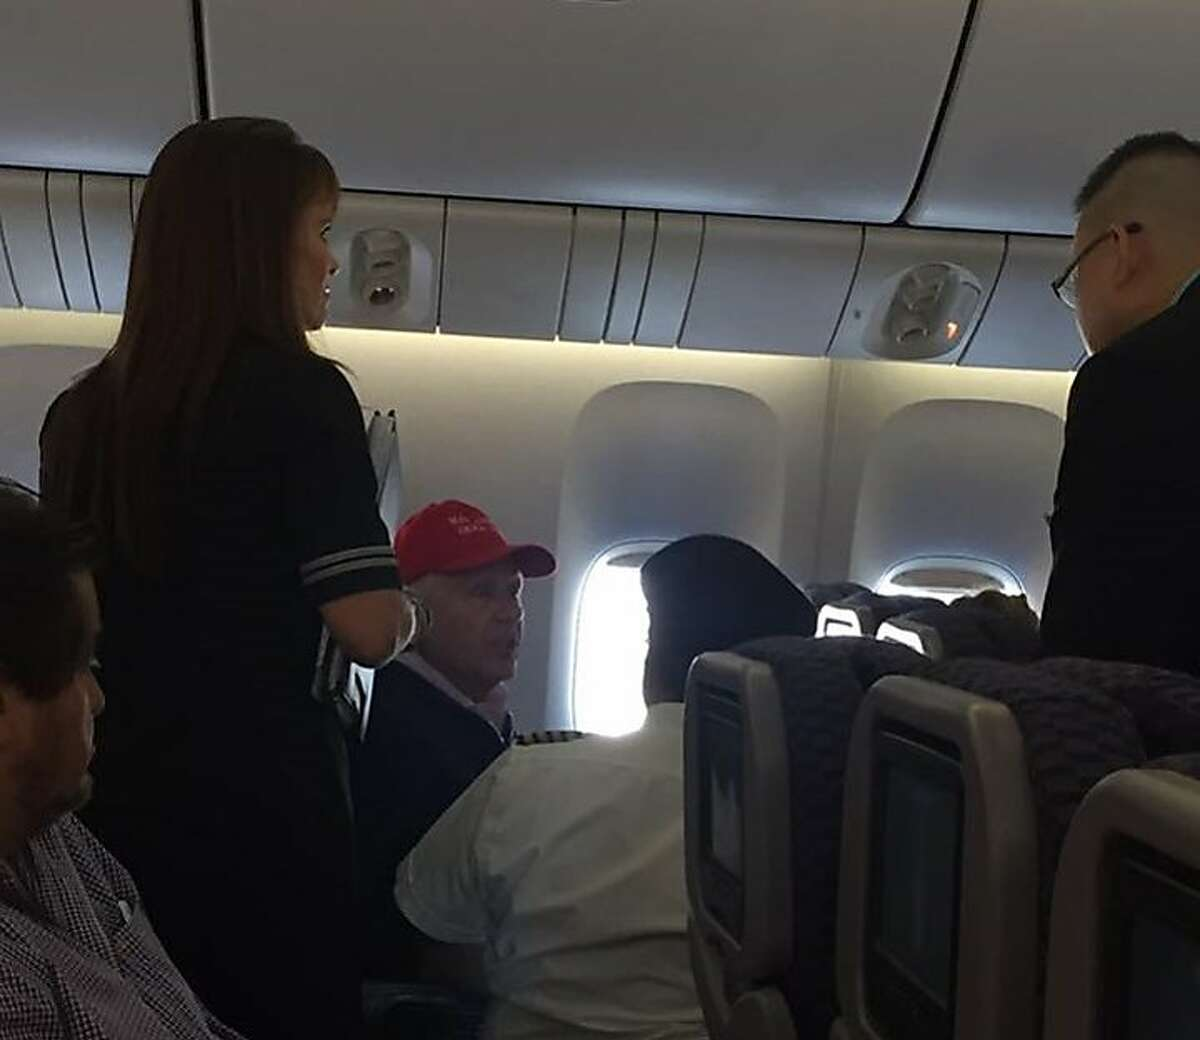 A man wearing a Make America Great Again hat caused a disruption on a United Airlines flight from Shanghai to Newark, forcing the plane to land at San Francisco International Airport. Photo credit:Clark Gredoña